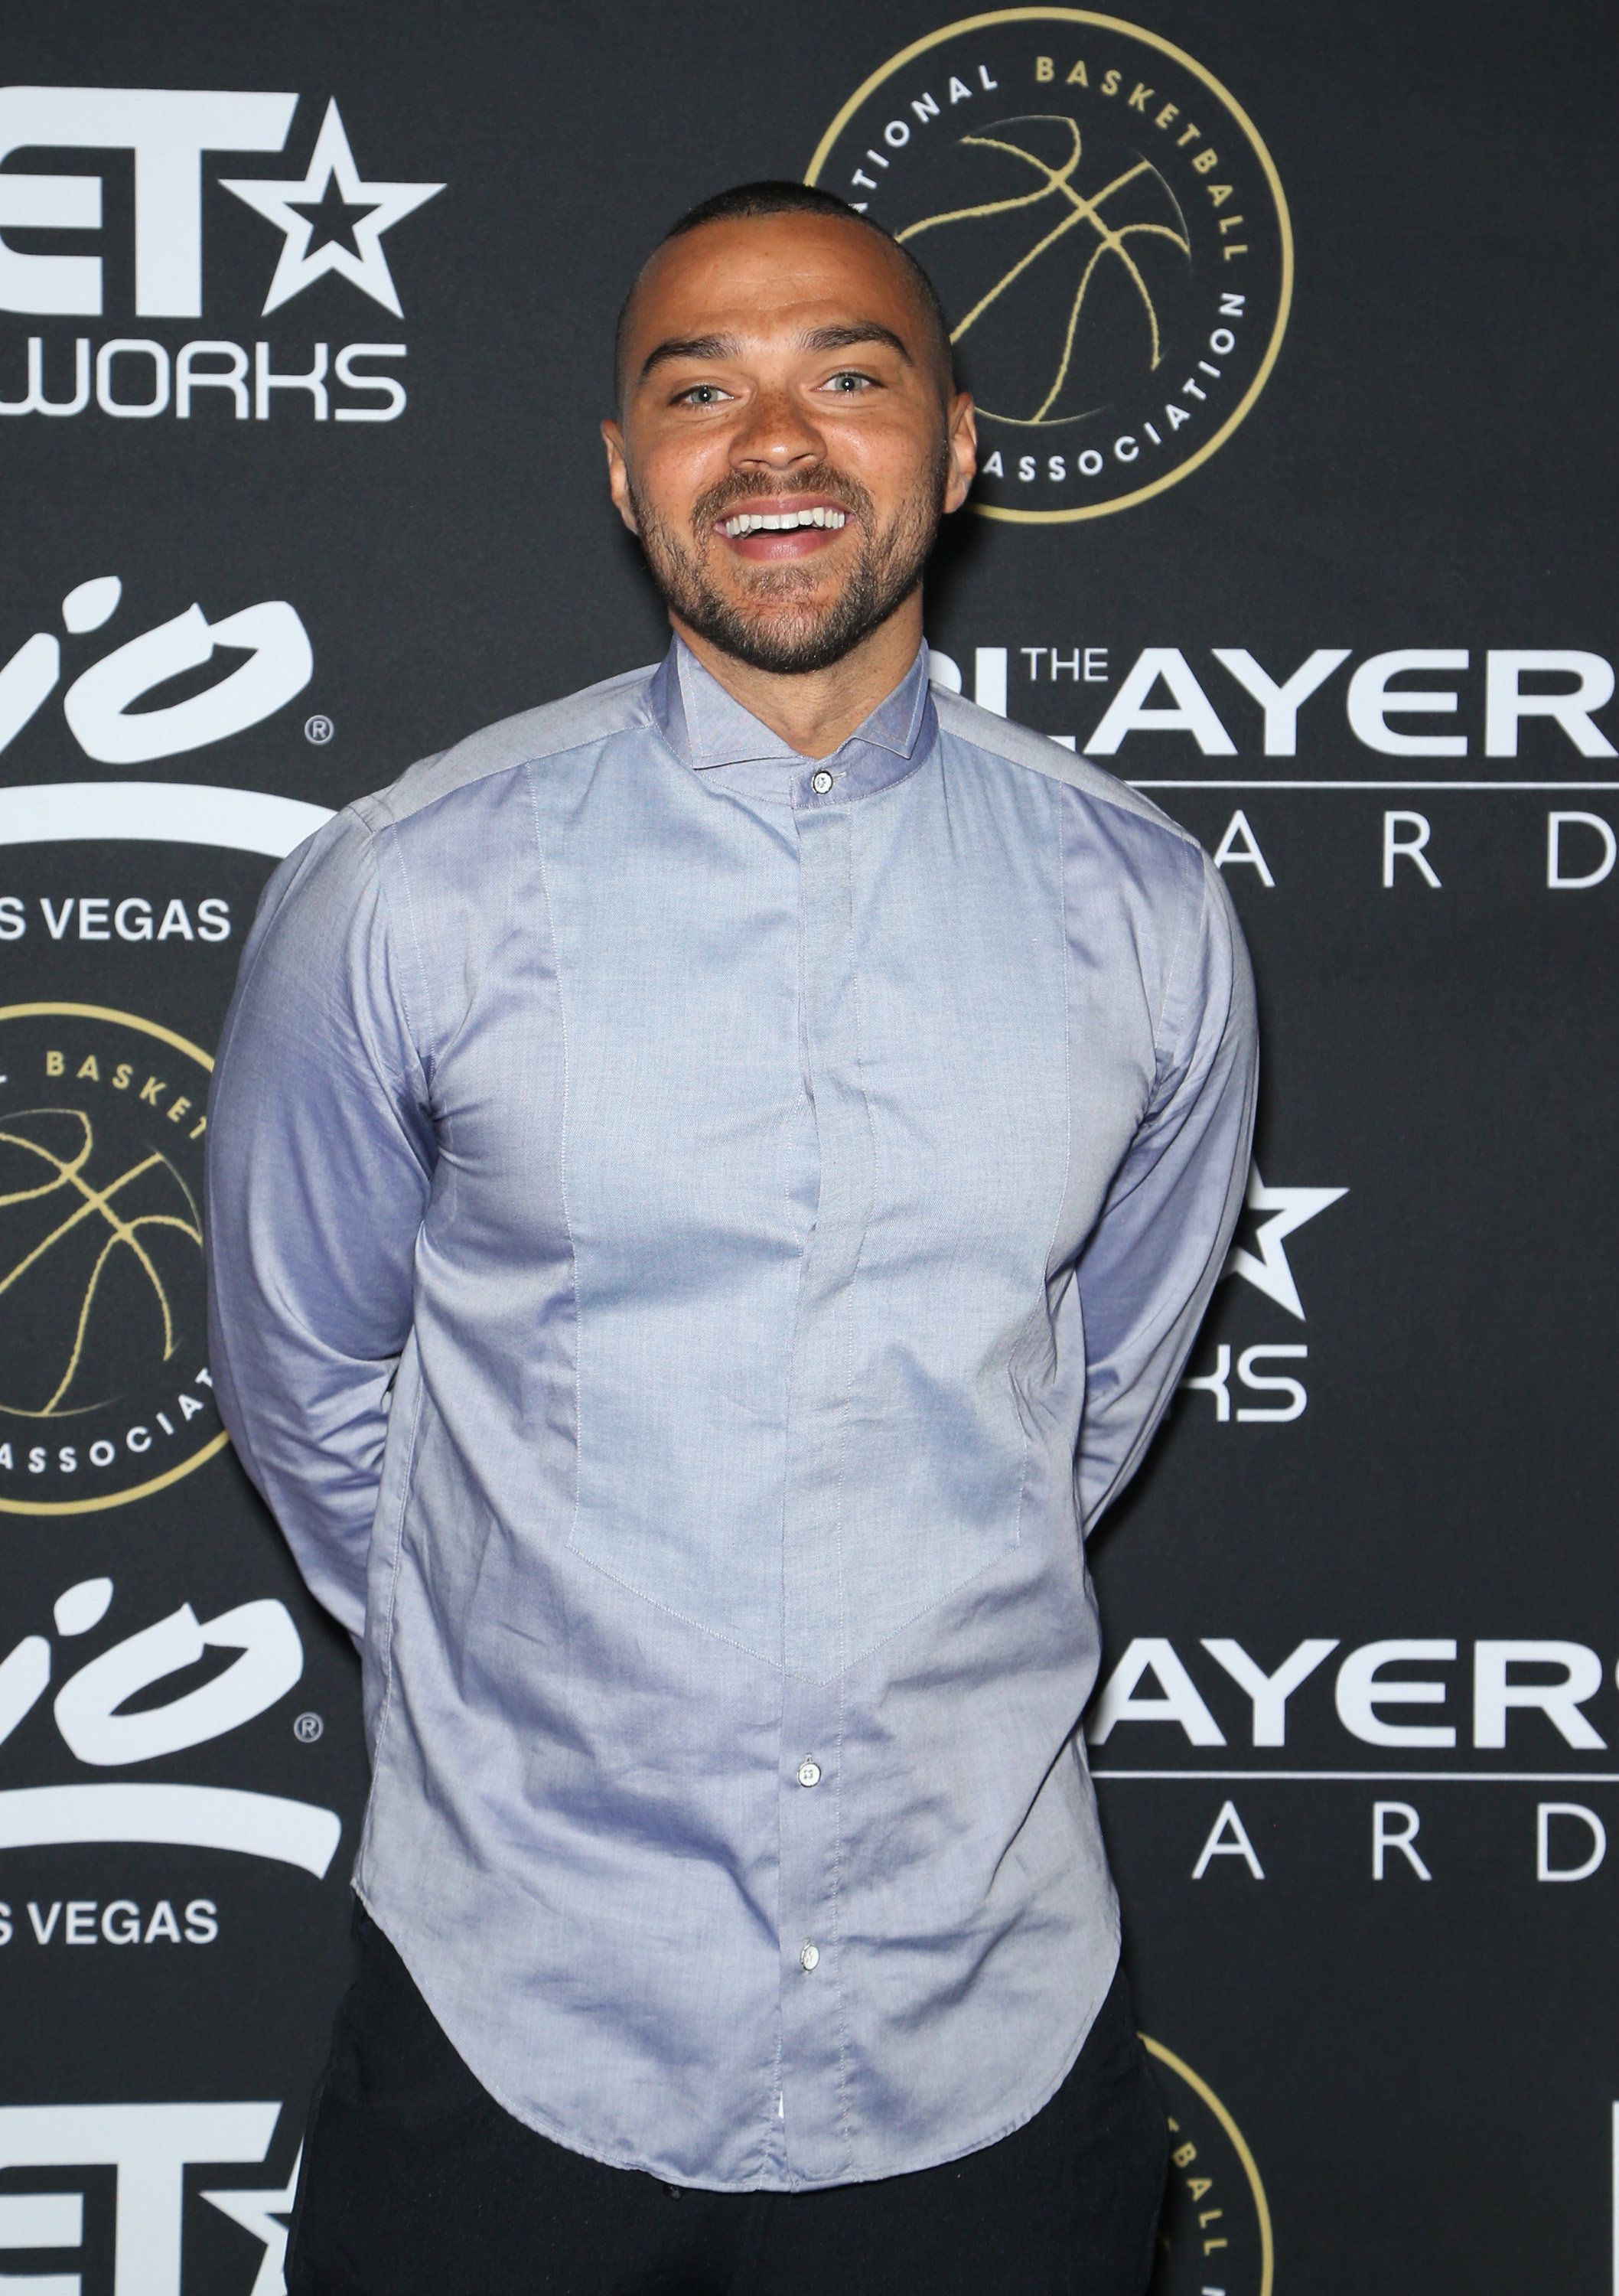 LAS VEGAS, NV - JULY 19:  Actor Jesse Williams attends The Players' Awards presented by BET at the Rio Hotel & Casino on July 19, 2015 in Las Vegas, Nevada.  (Photo by Gabe Ginsberg/BET/Getty Images for BET)